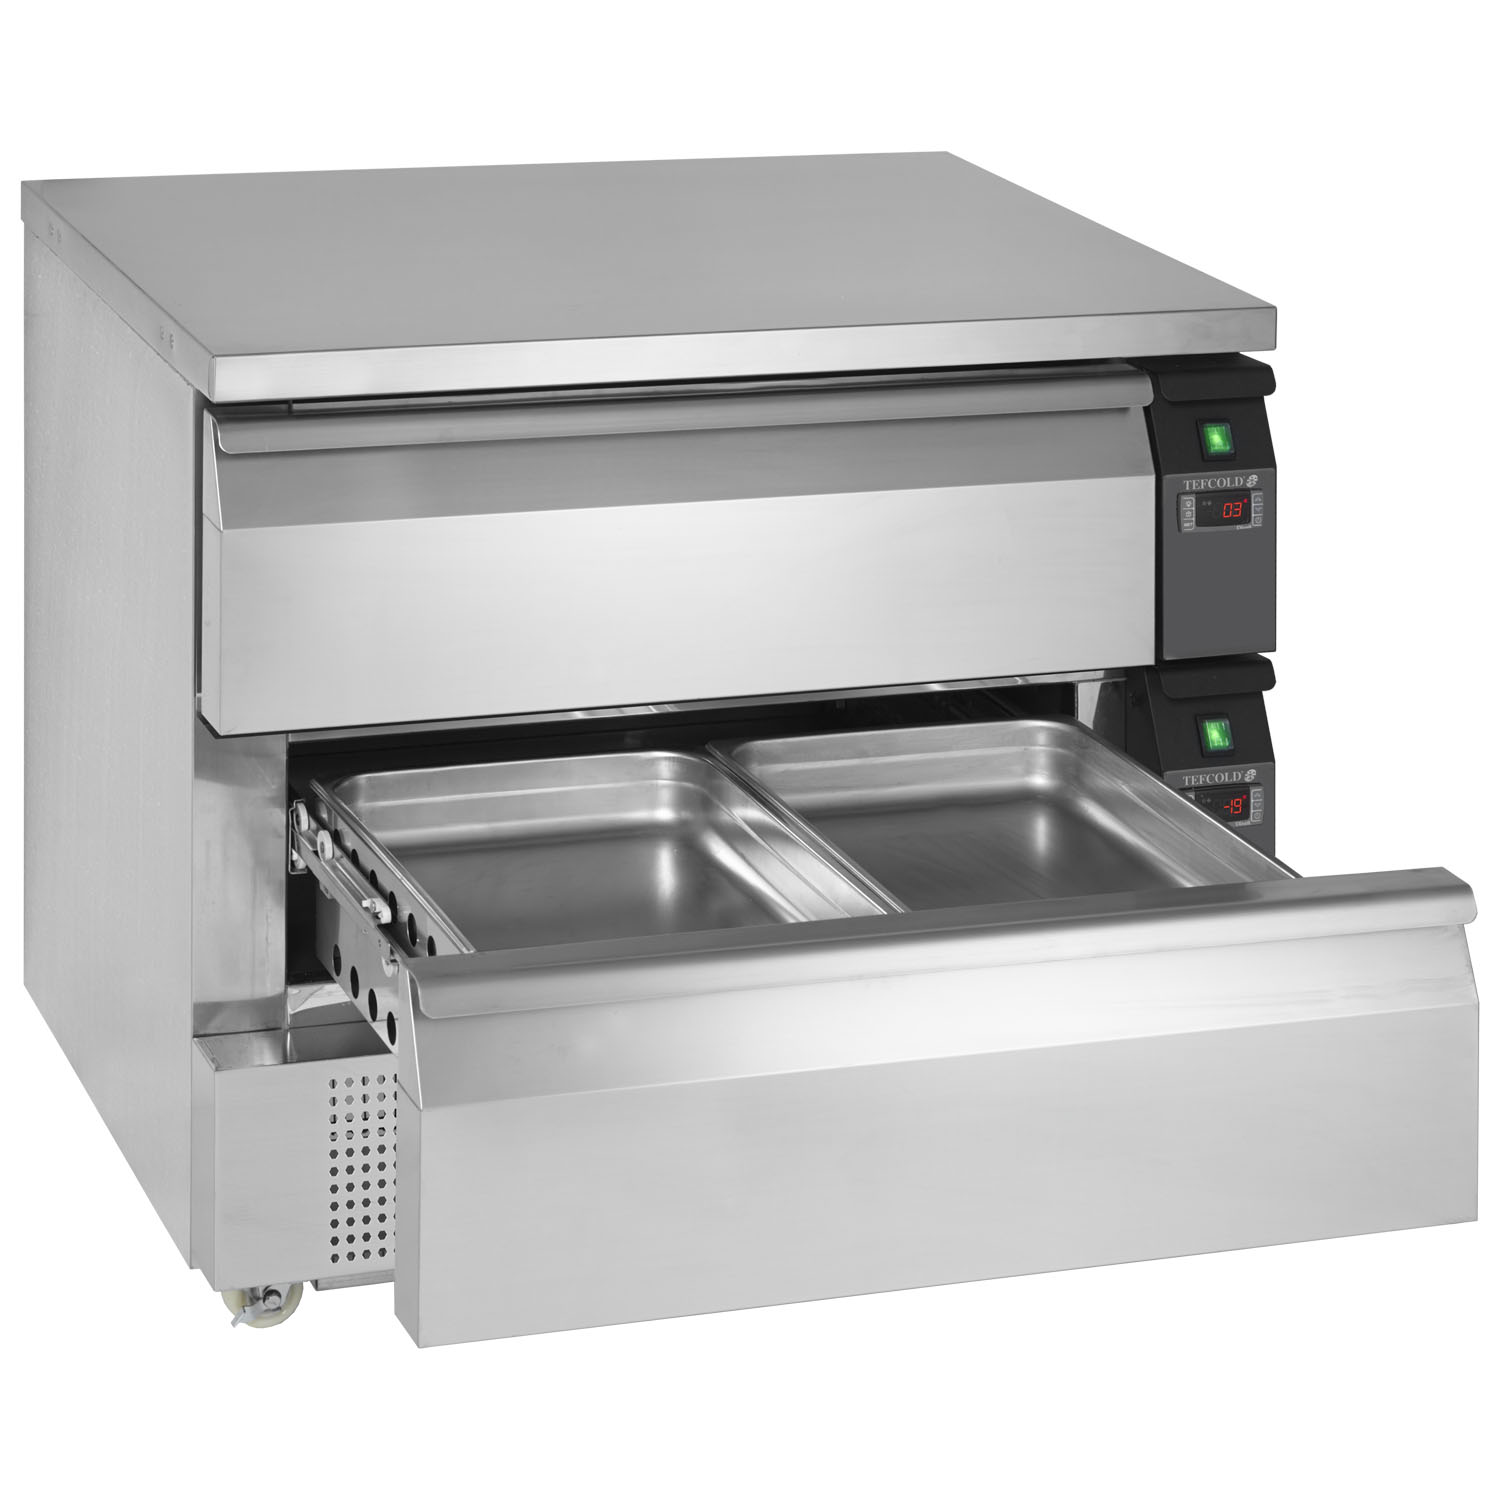 Tefcold Uni-Drawer UD2-2 Dual Temperature Gastronorm Stainless Steel Counter opn